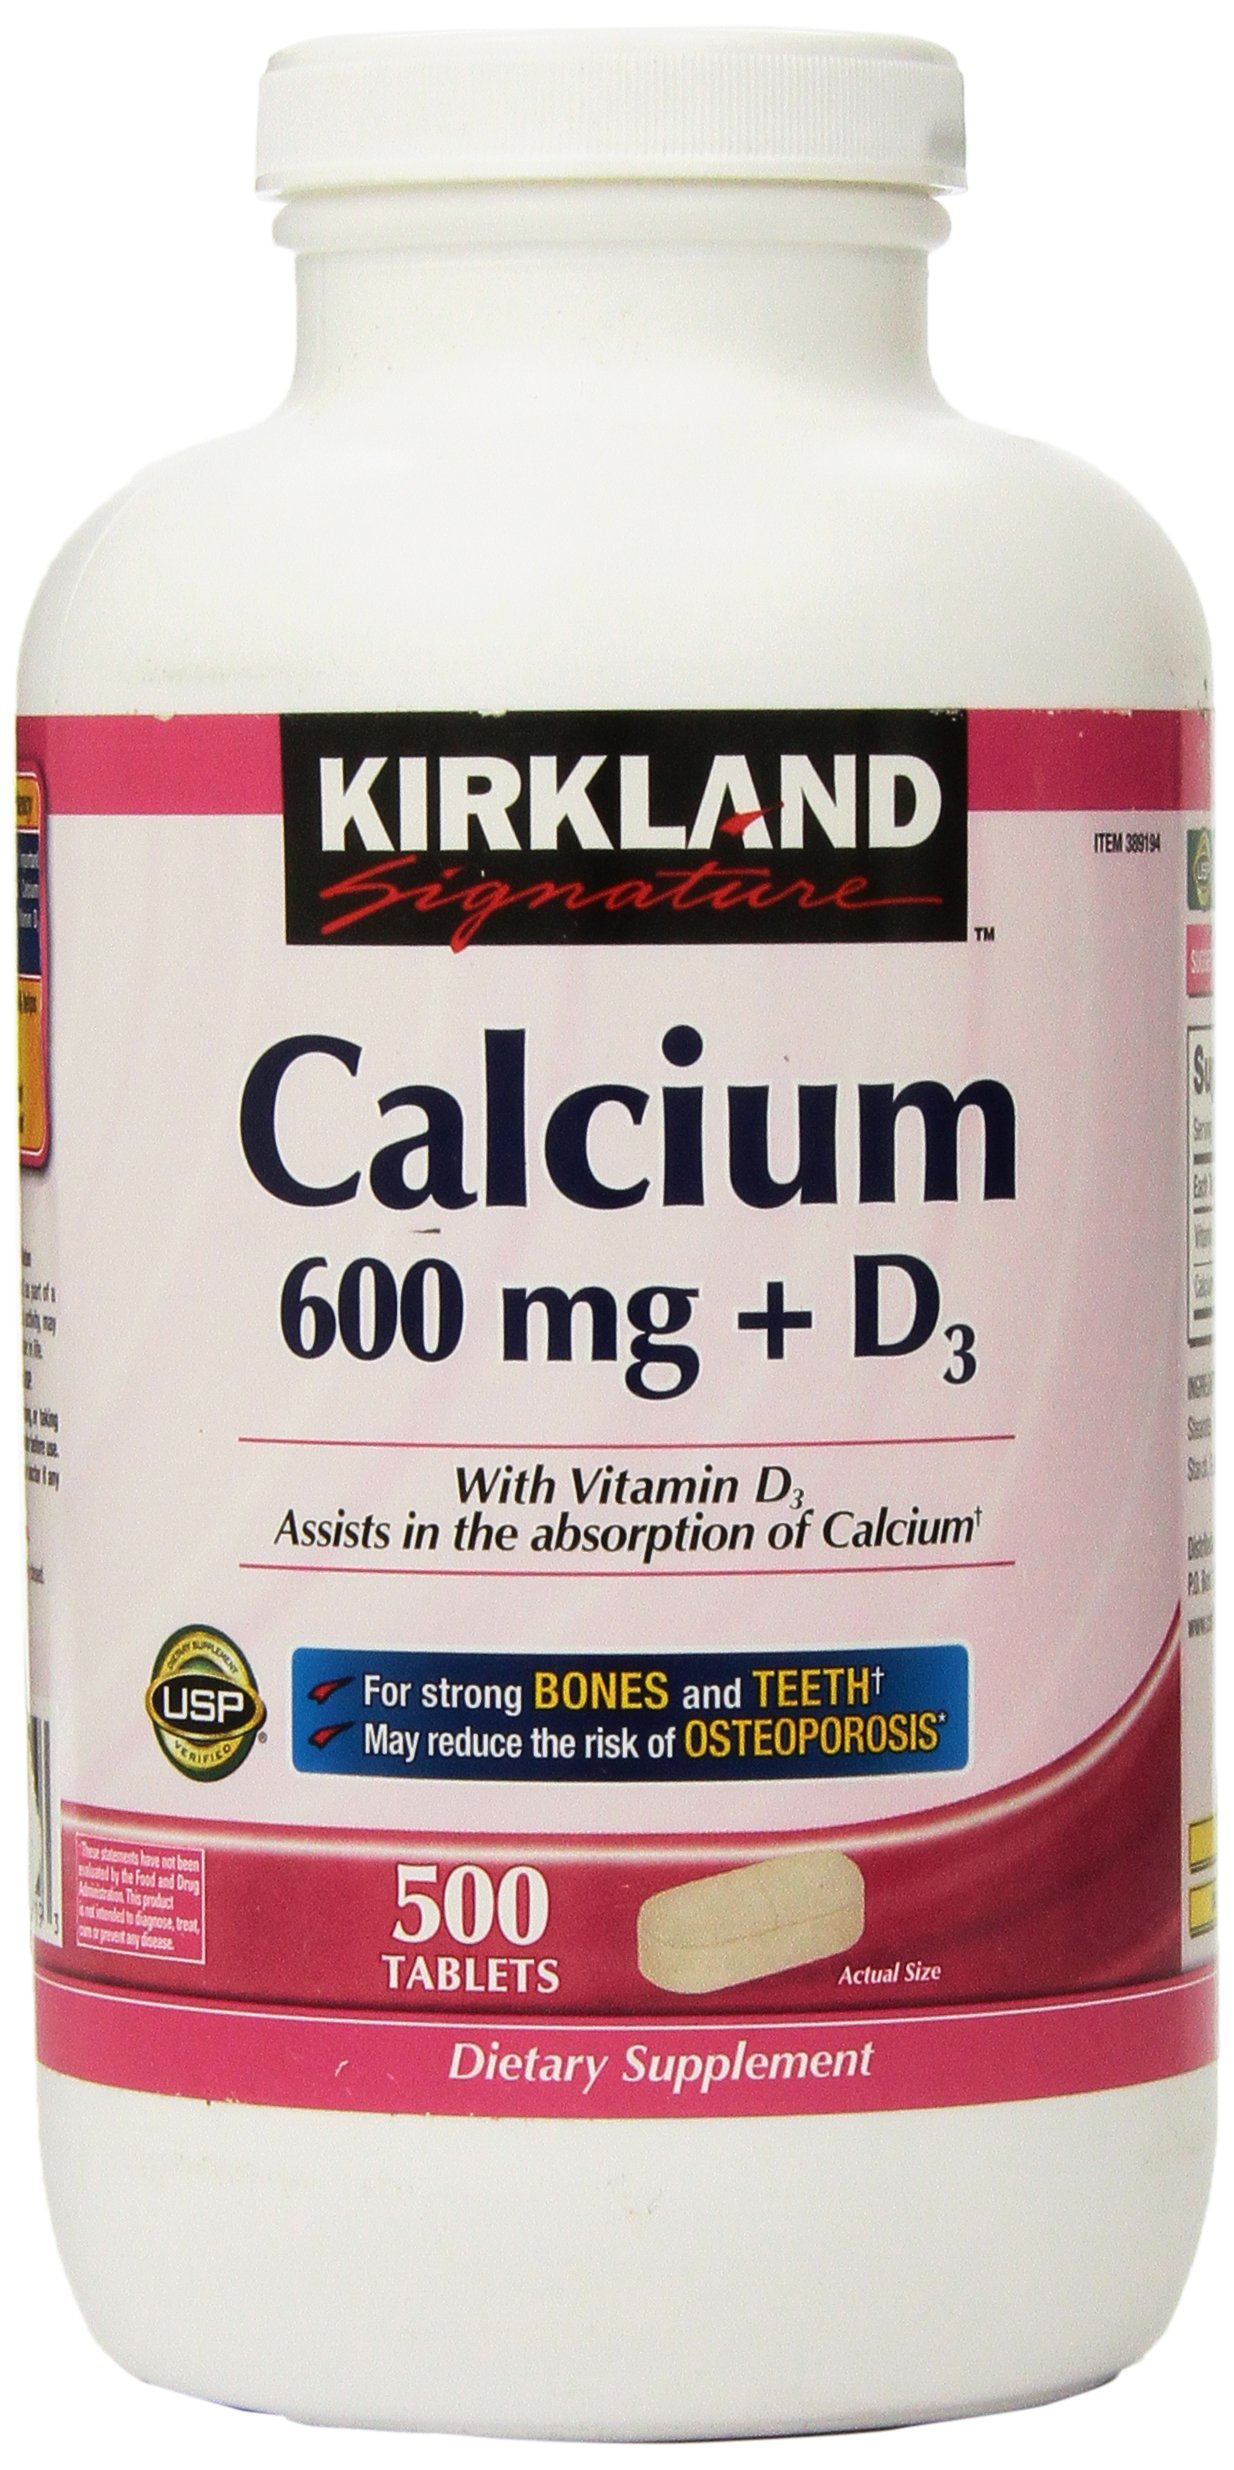 Kirkland Signature Calcium, 600 mg+D3, 500-Count Tablets